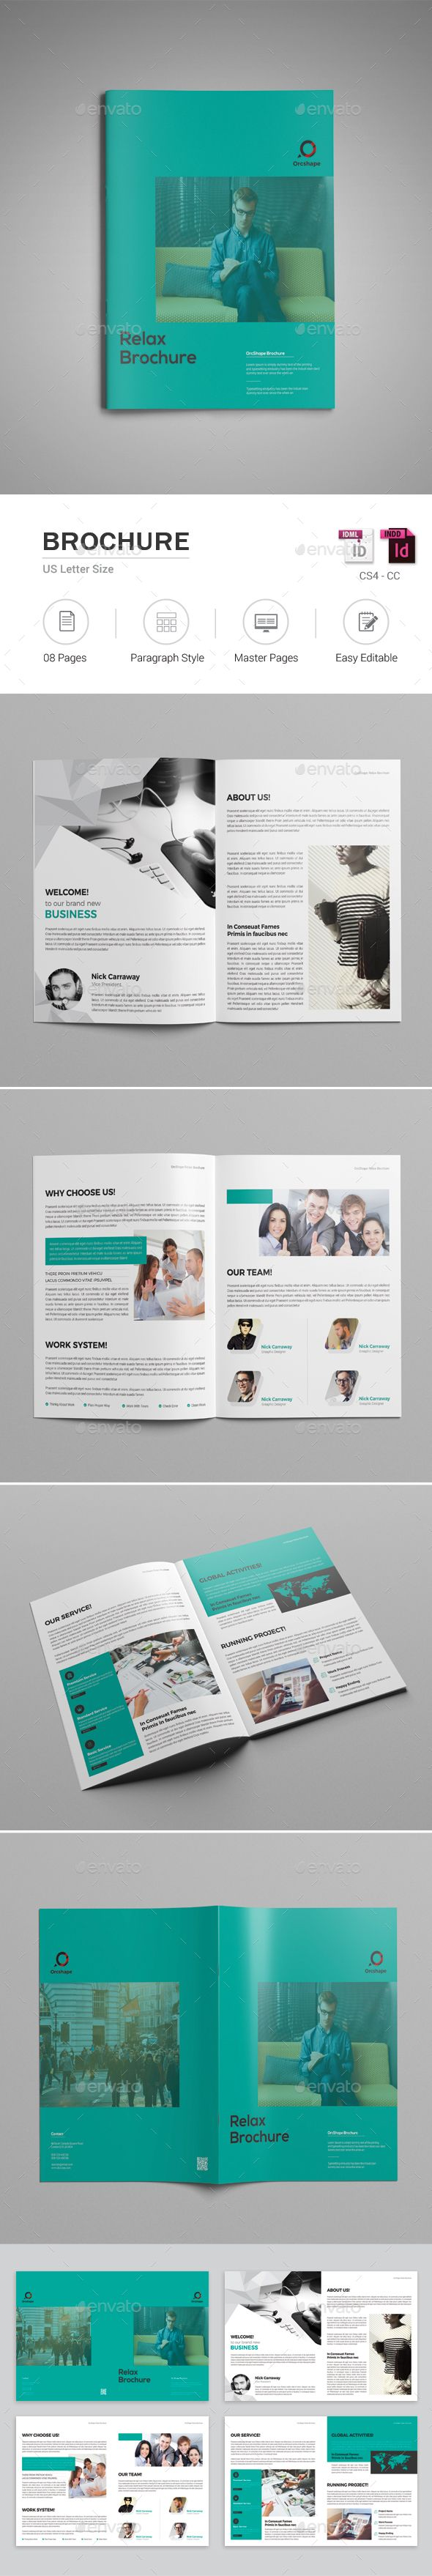 Pages InDesign Brochure Template Indesign Brochure Templates - Brochure template for pages